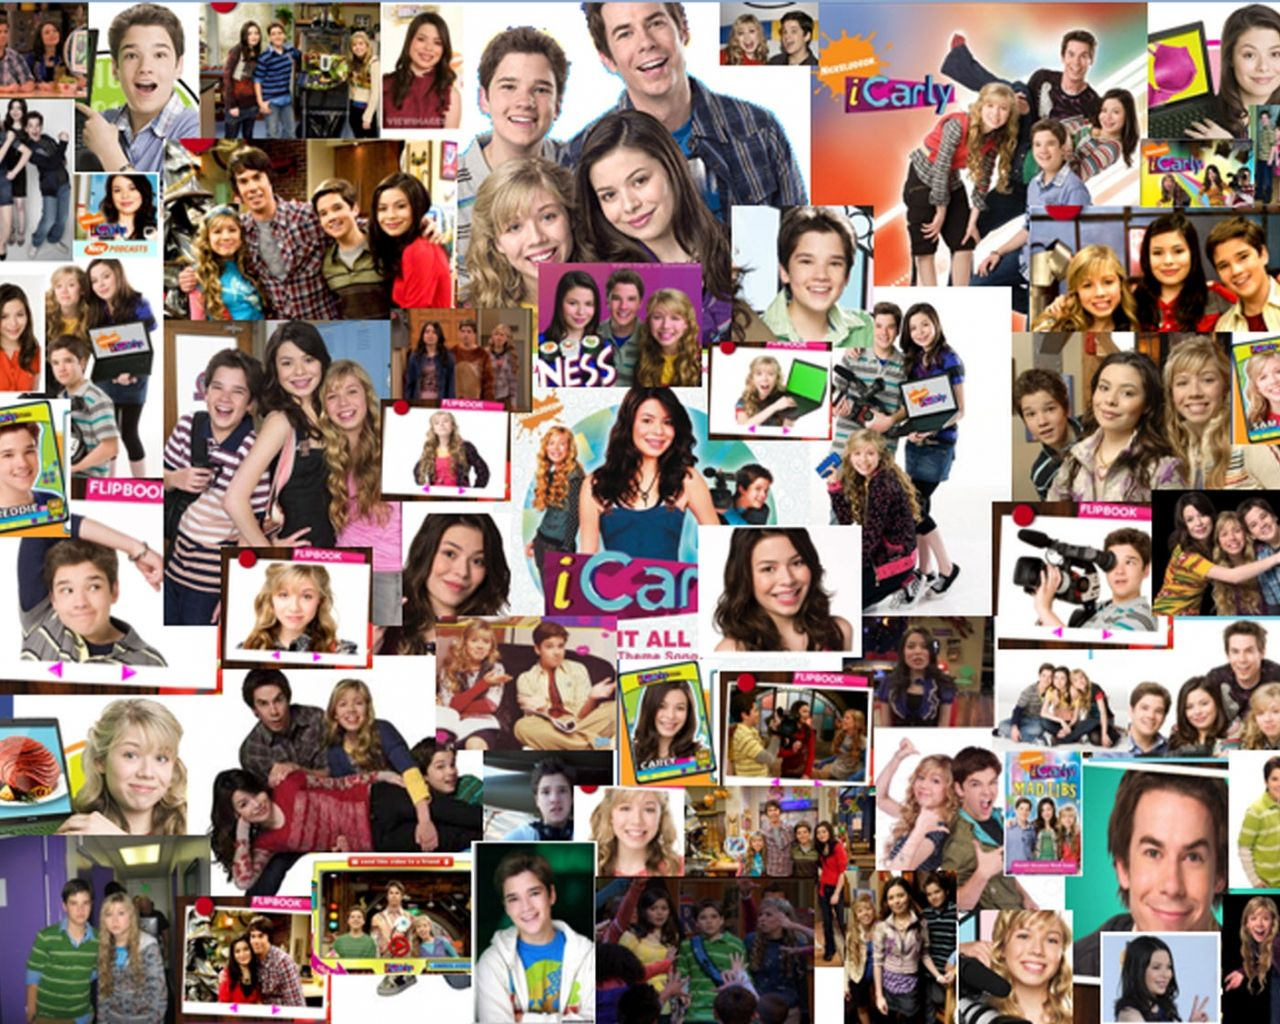 1280x1024 Free download Icarly Wallpaper Desktop [1500x1125] for your ...